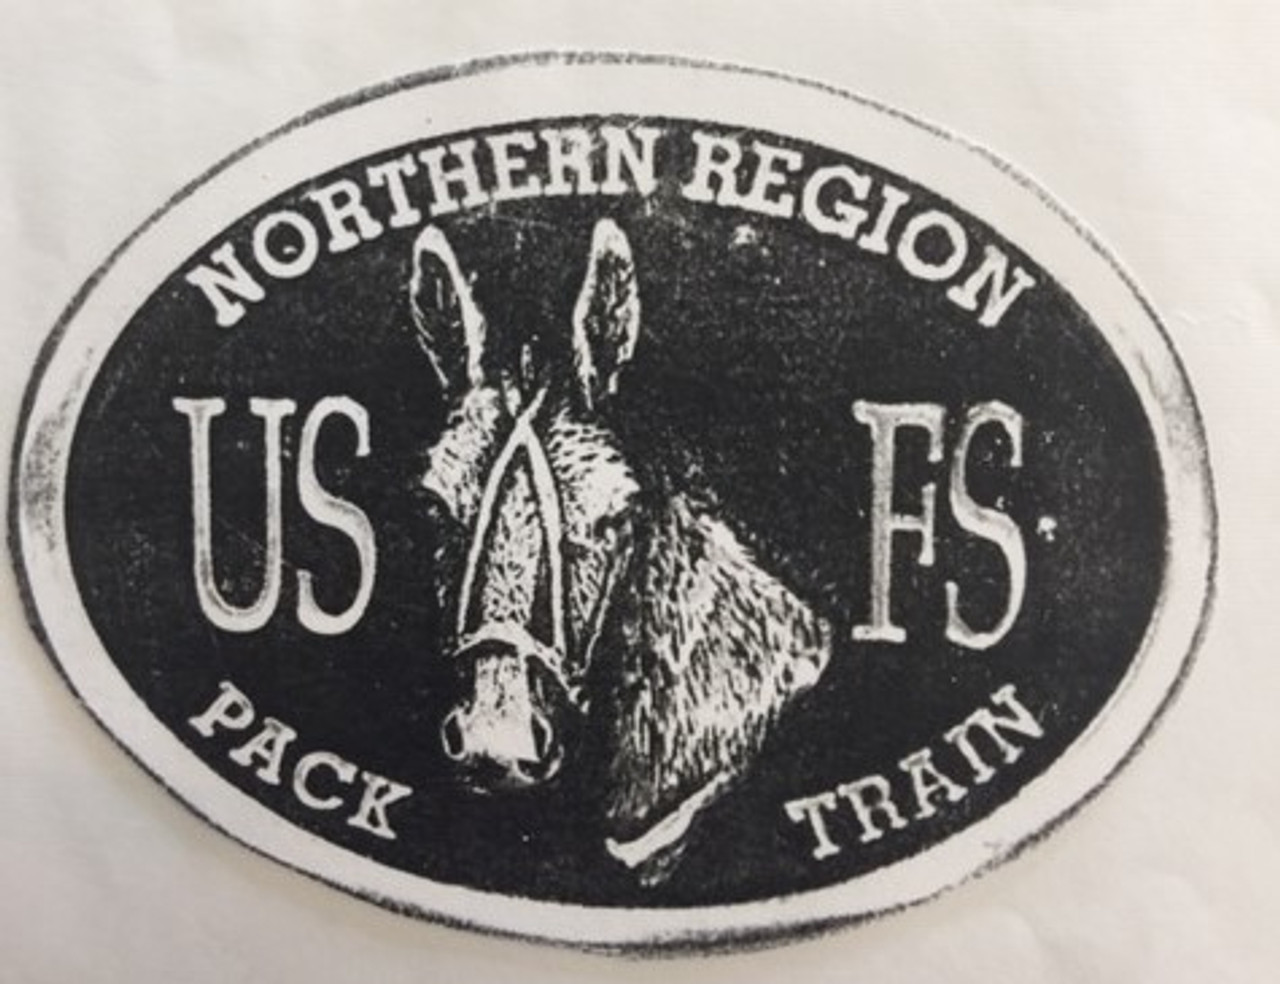 Northern Region Pack Train Forest Service Buckle